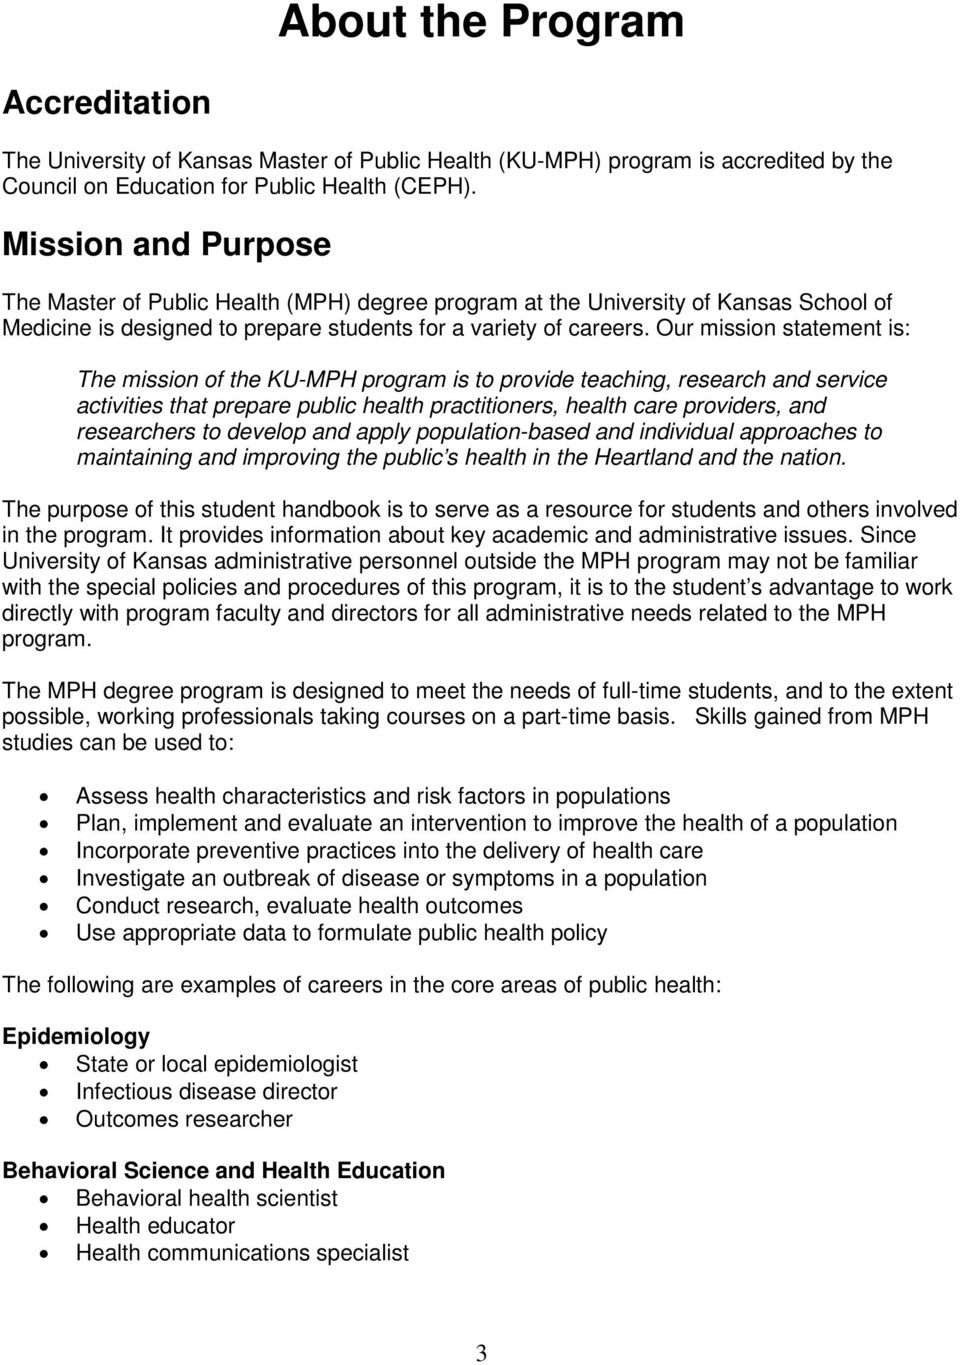 Our mission statement is: The mission of the KU-MPH program is to provide teaching, research and service activities that prepare public health practitioners, health care providers, and researchers to